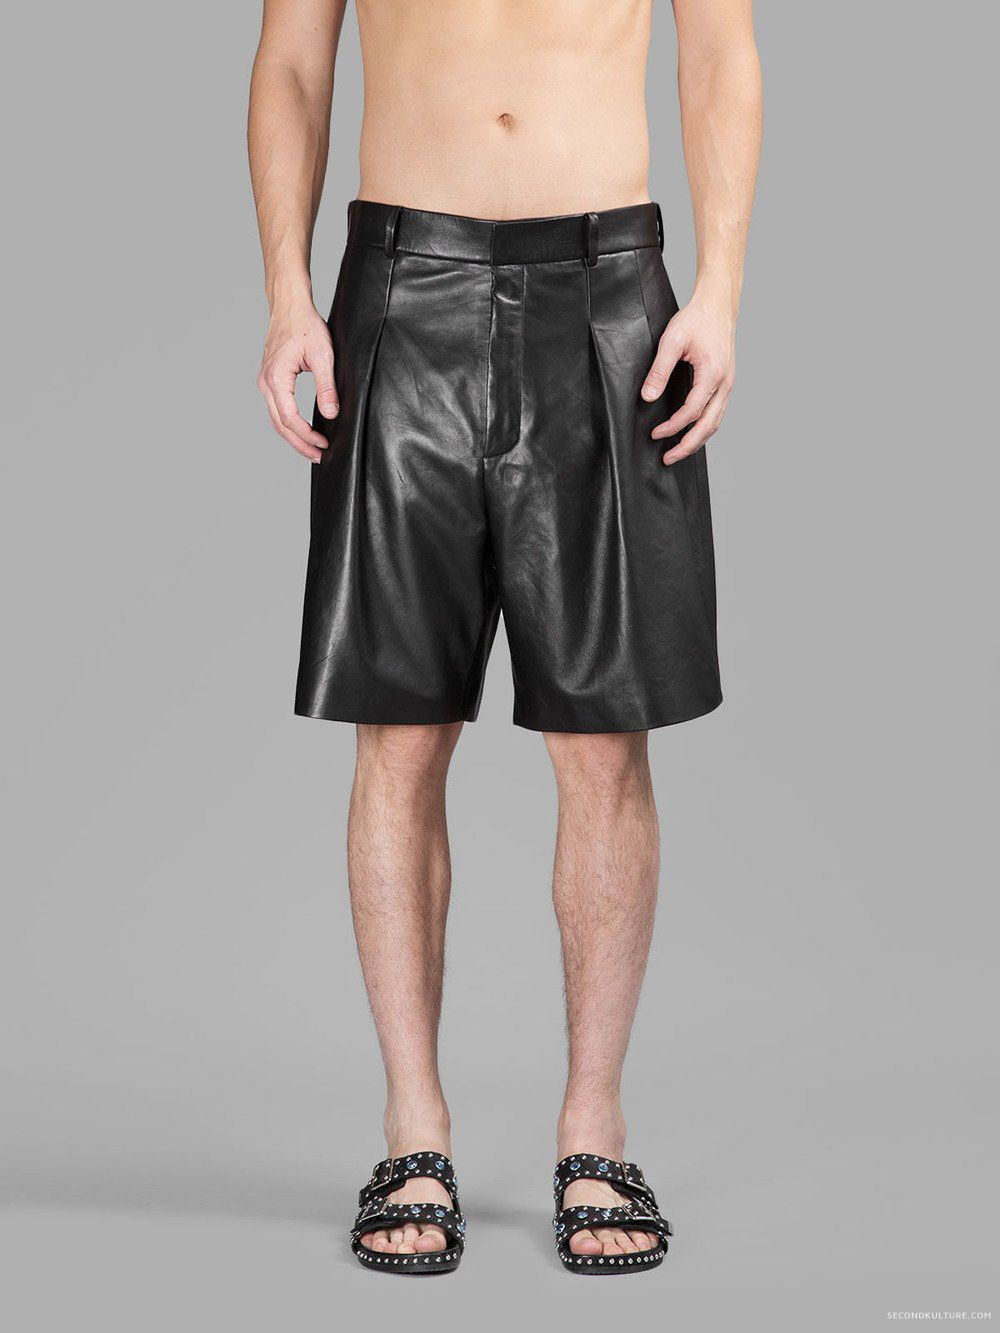 Bermuda Style Black Leather Mens Shorts For Winter Mens Shorts Winter Shorts Black Leather [ 1333 x 1000 Pixel ]